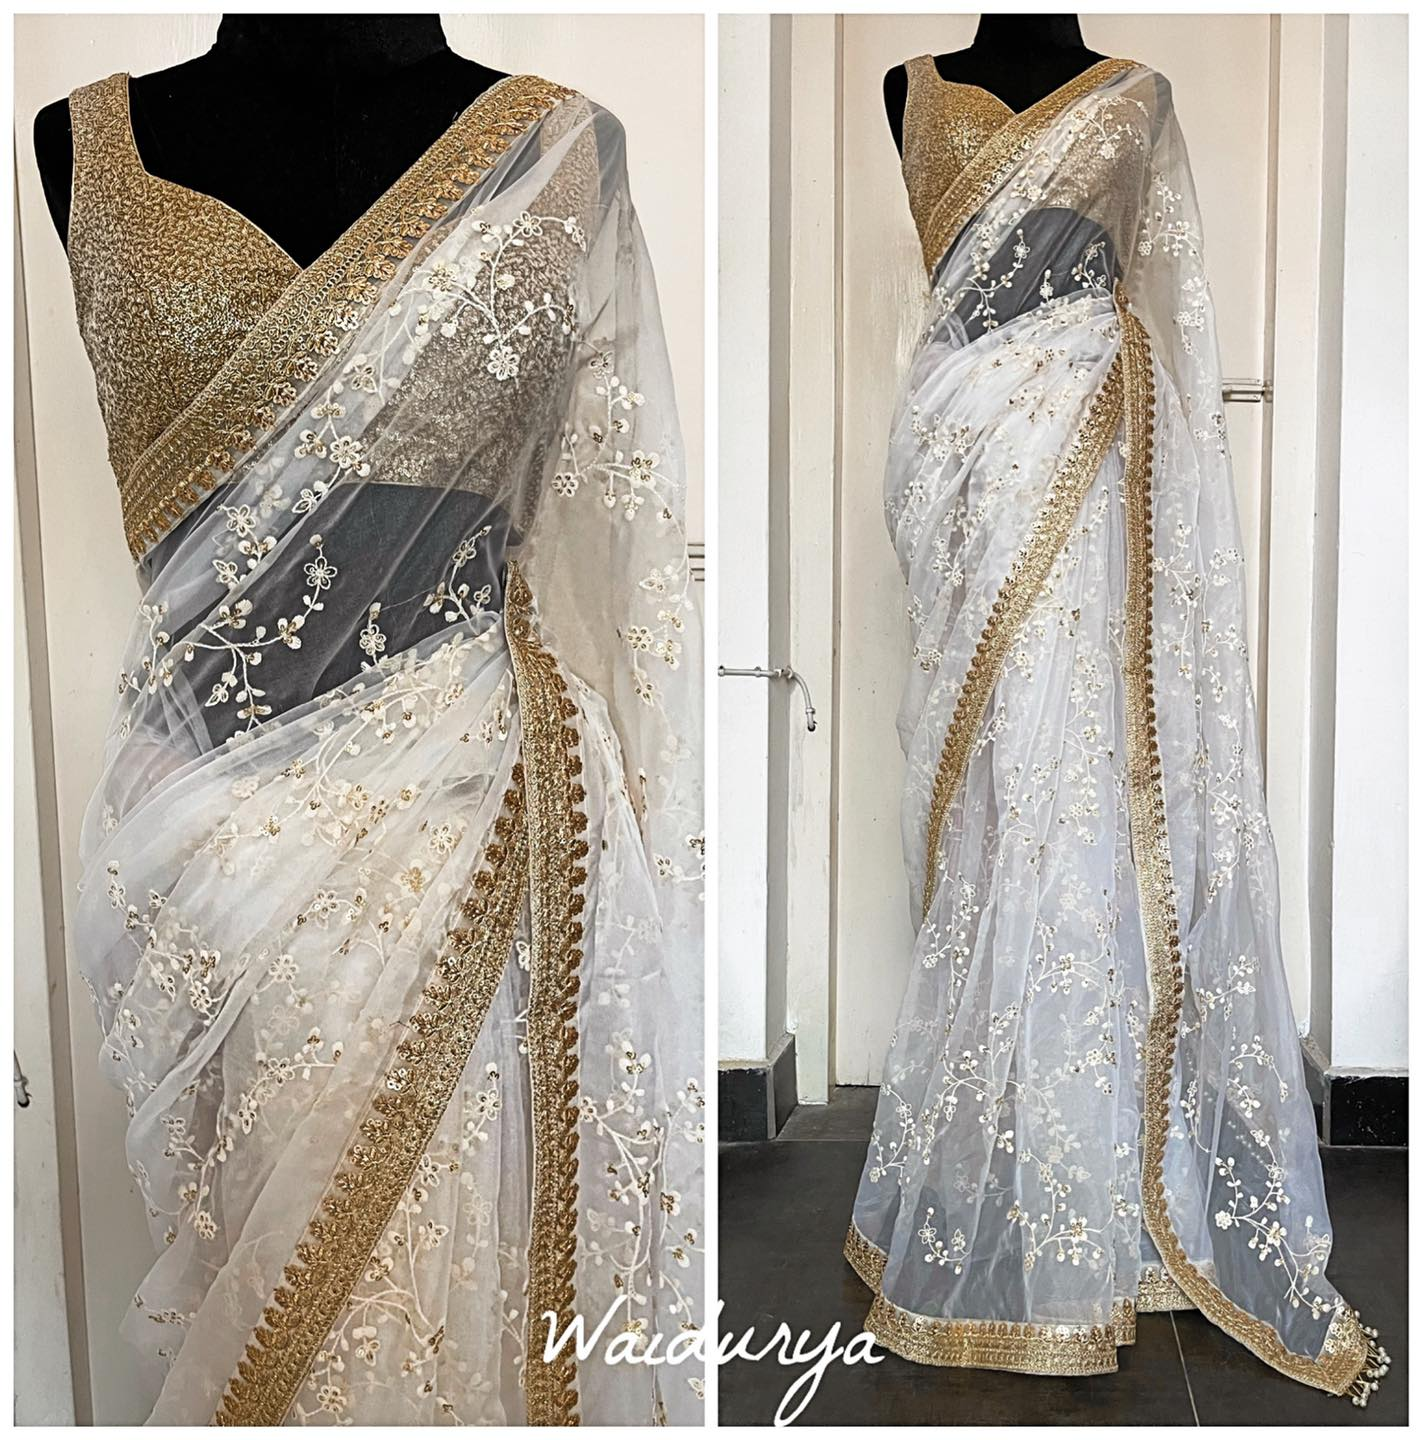 PREET is the perfect simple bridal sari. It's elegant and oh so pretty! Silk organza in an ivory with intricate thread work and sequin embroidered all over. The border is a gold sequin embroidered one in an elaborate design. The sari is completed with hand made pearl tassels. The blouse is a heavily embroidered gold sequin one. Just stunning!!!!! 2021-10-16